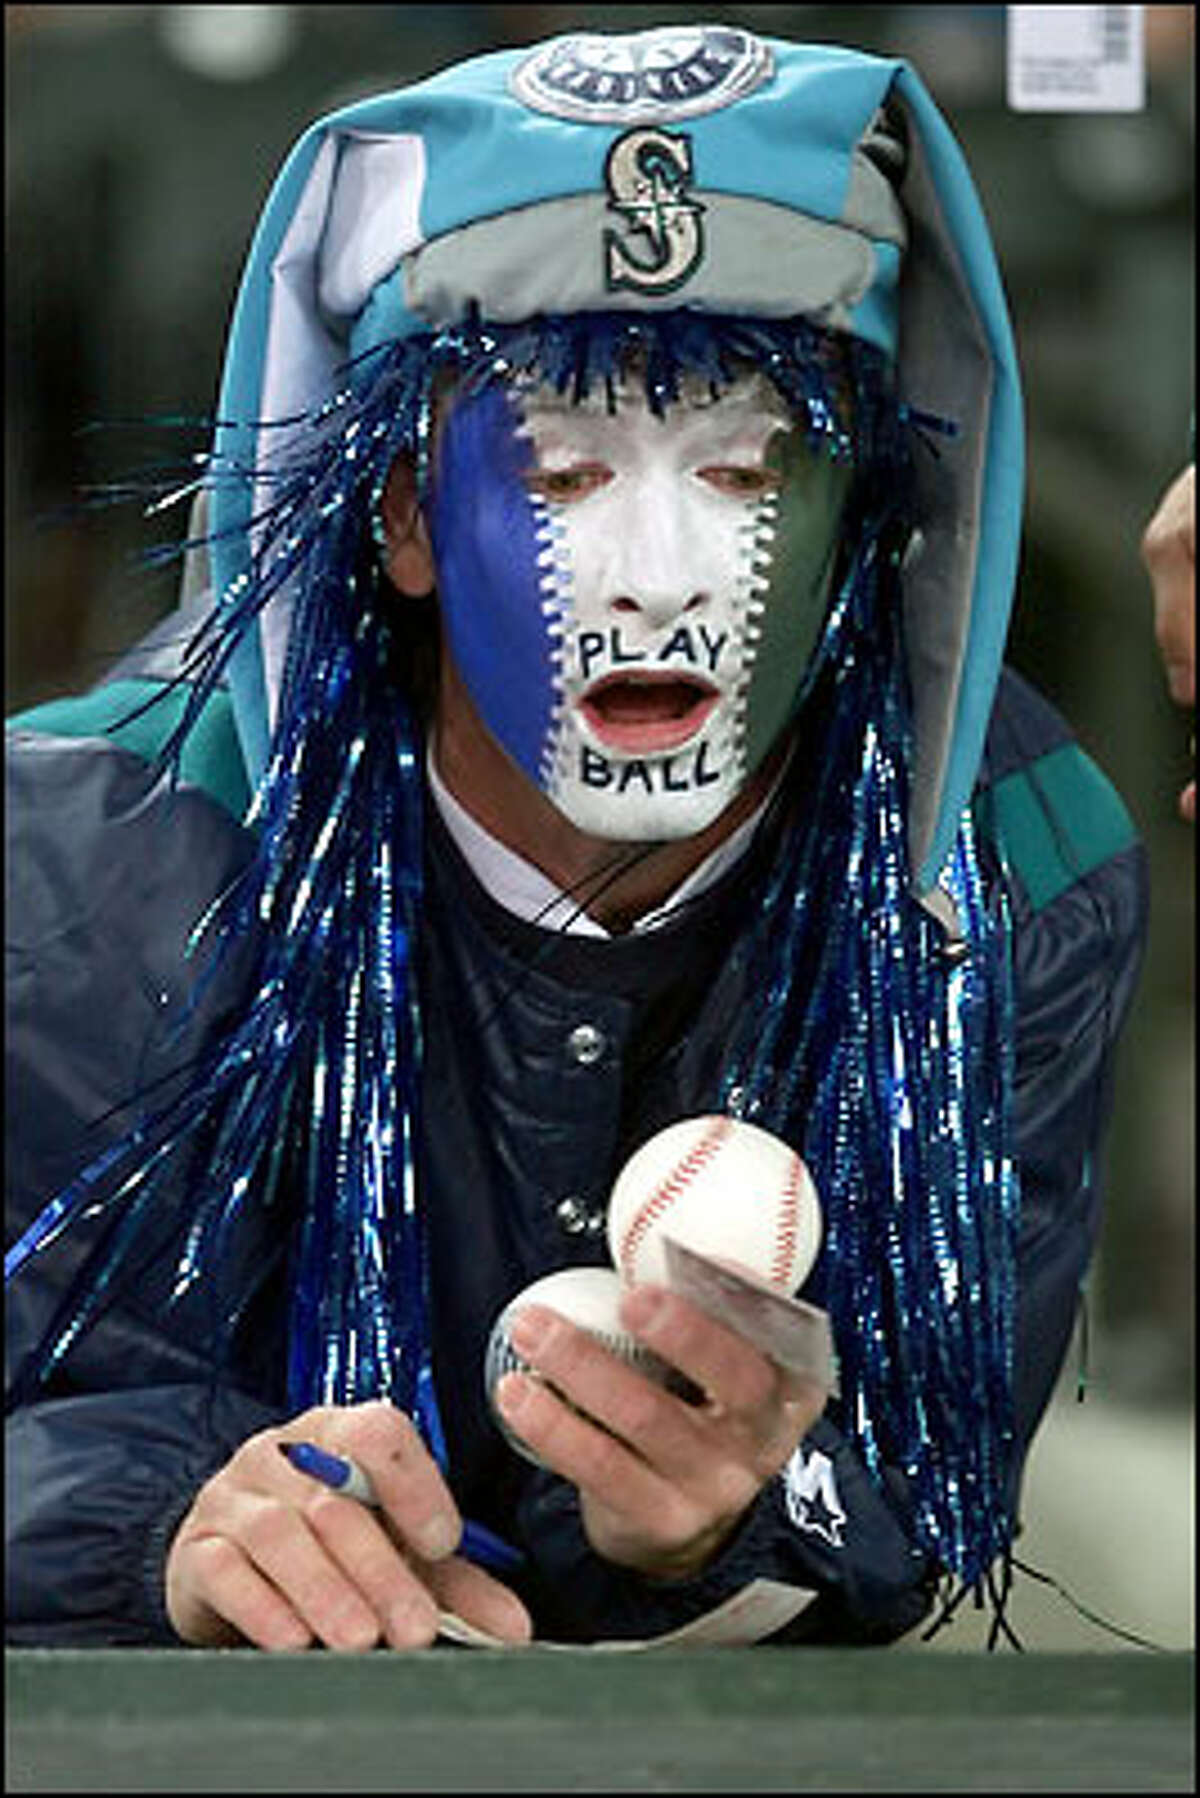 Ron Flanagan of Parkland was ready for the Mariners' season opener against Boston on April 4. Although the Mariners were shut out by Pedro Martinez, 2-0, it marked the only time this season the team had a record under .500.